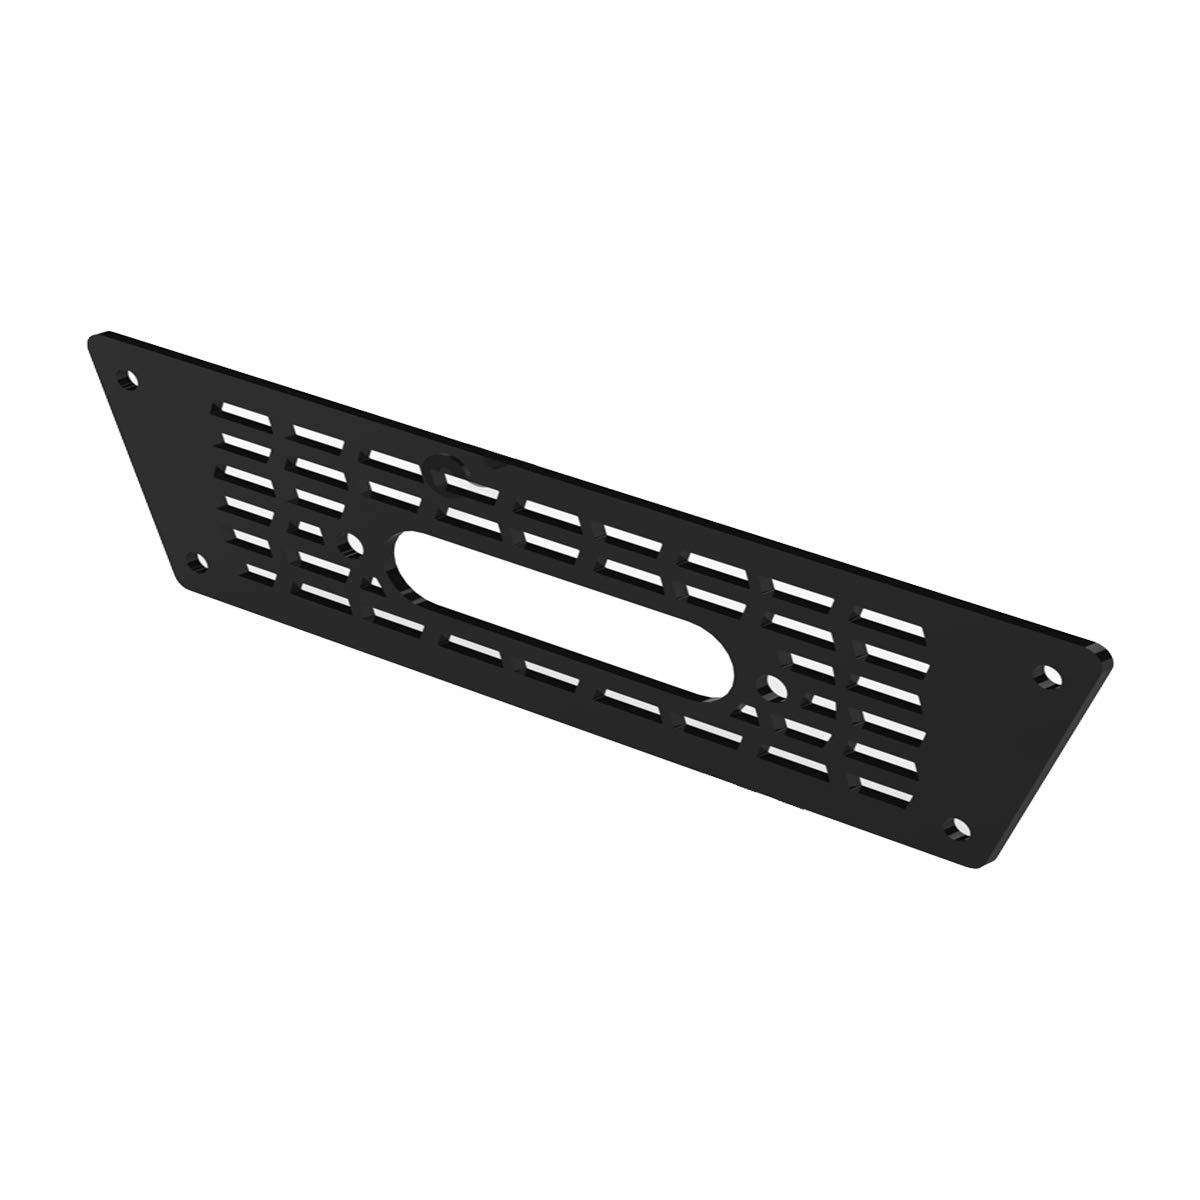 VIPER UTV Winch Fairlead Mount Plate for Textron Stampede by MotoAlliance